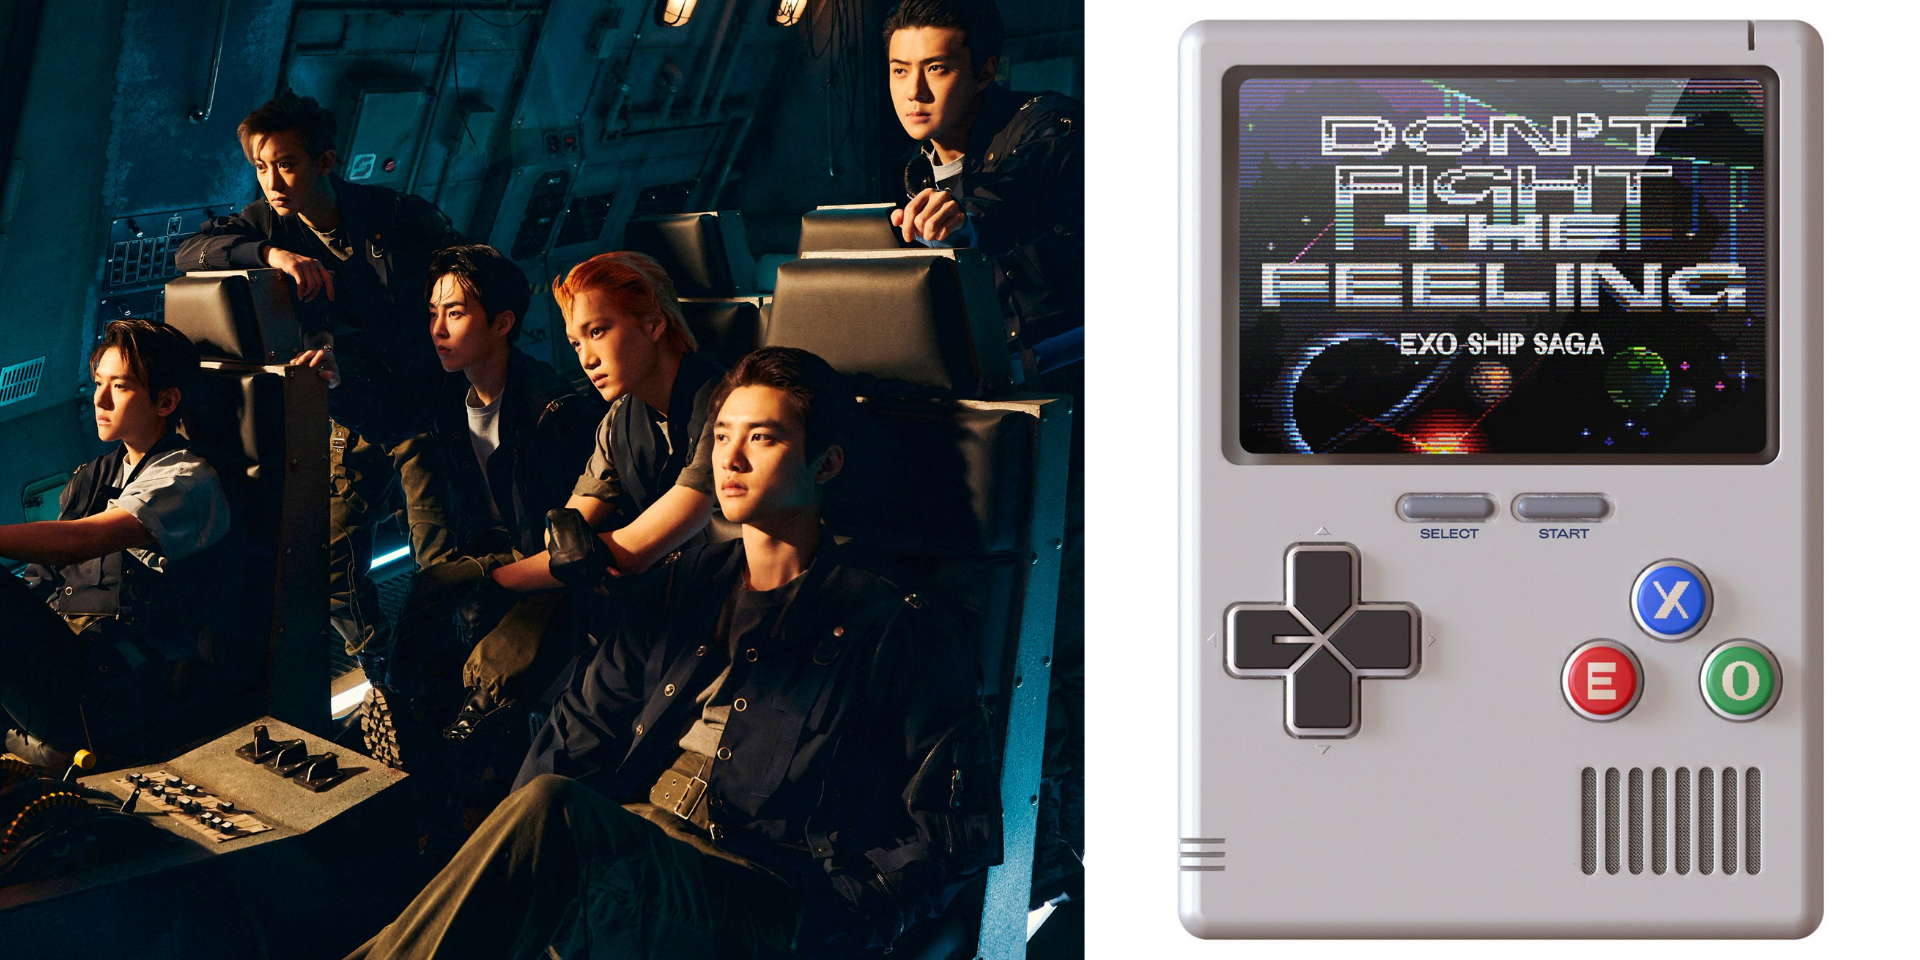 EXO launch new mini-game to celebrate upcoming album 'DON'T FIGHT THE